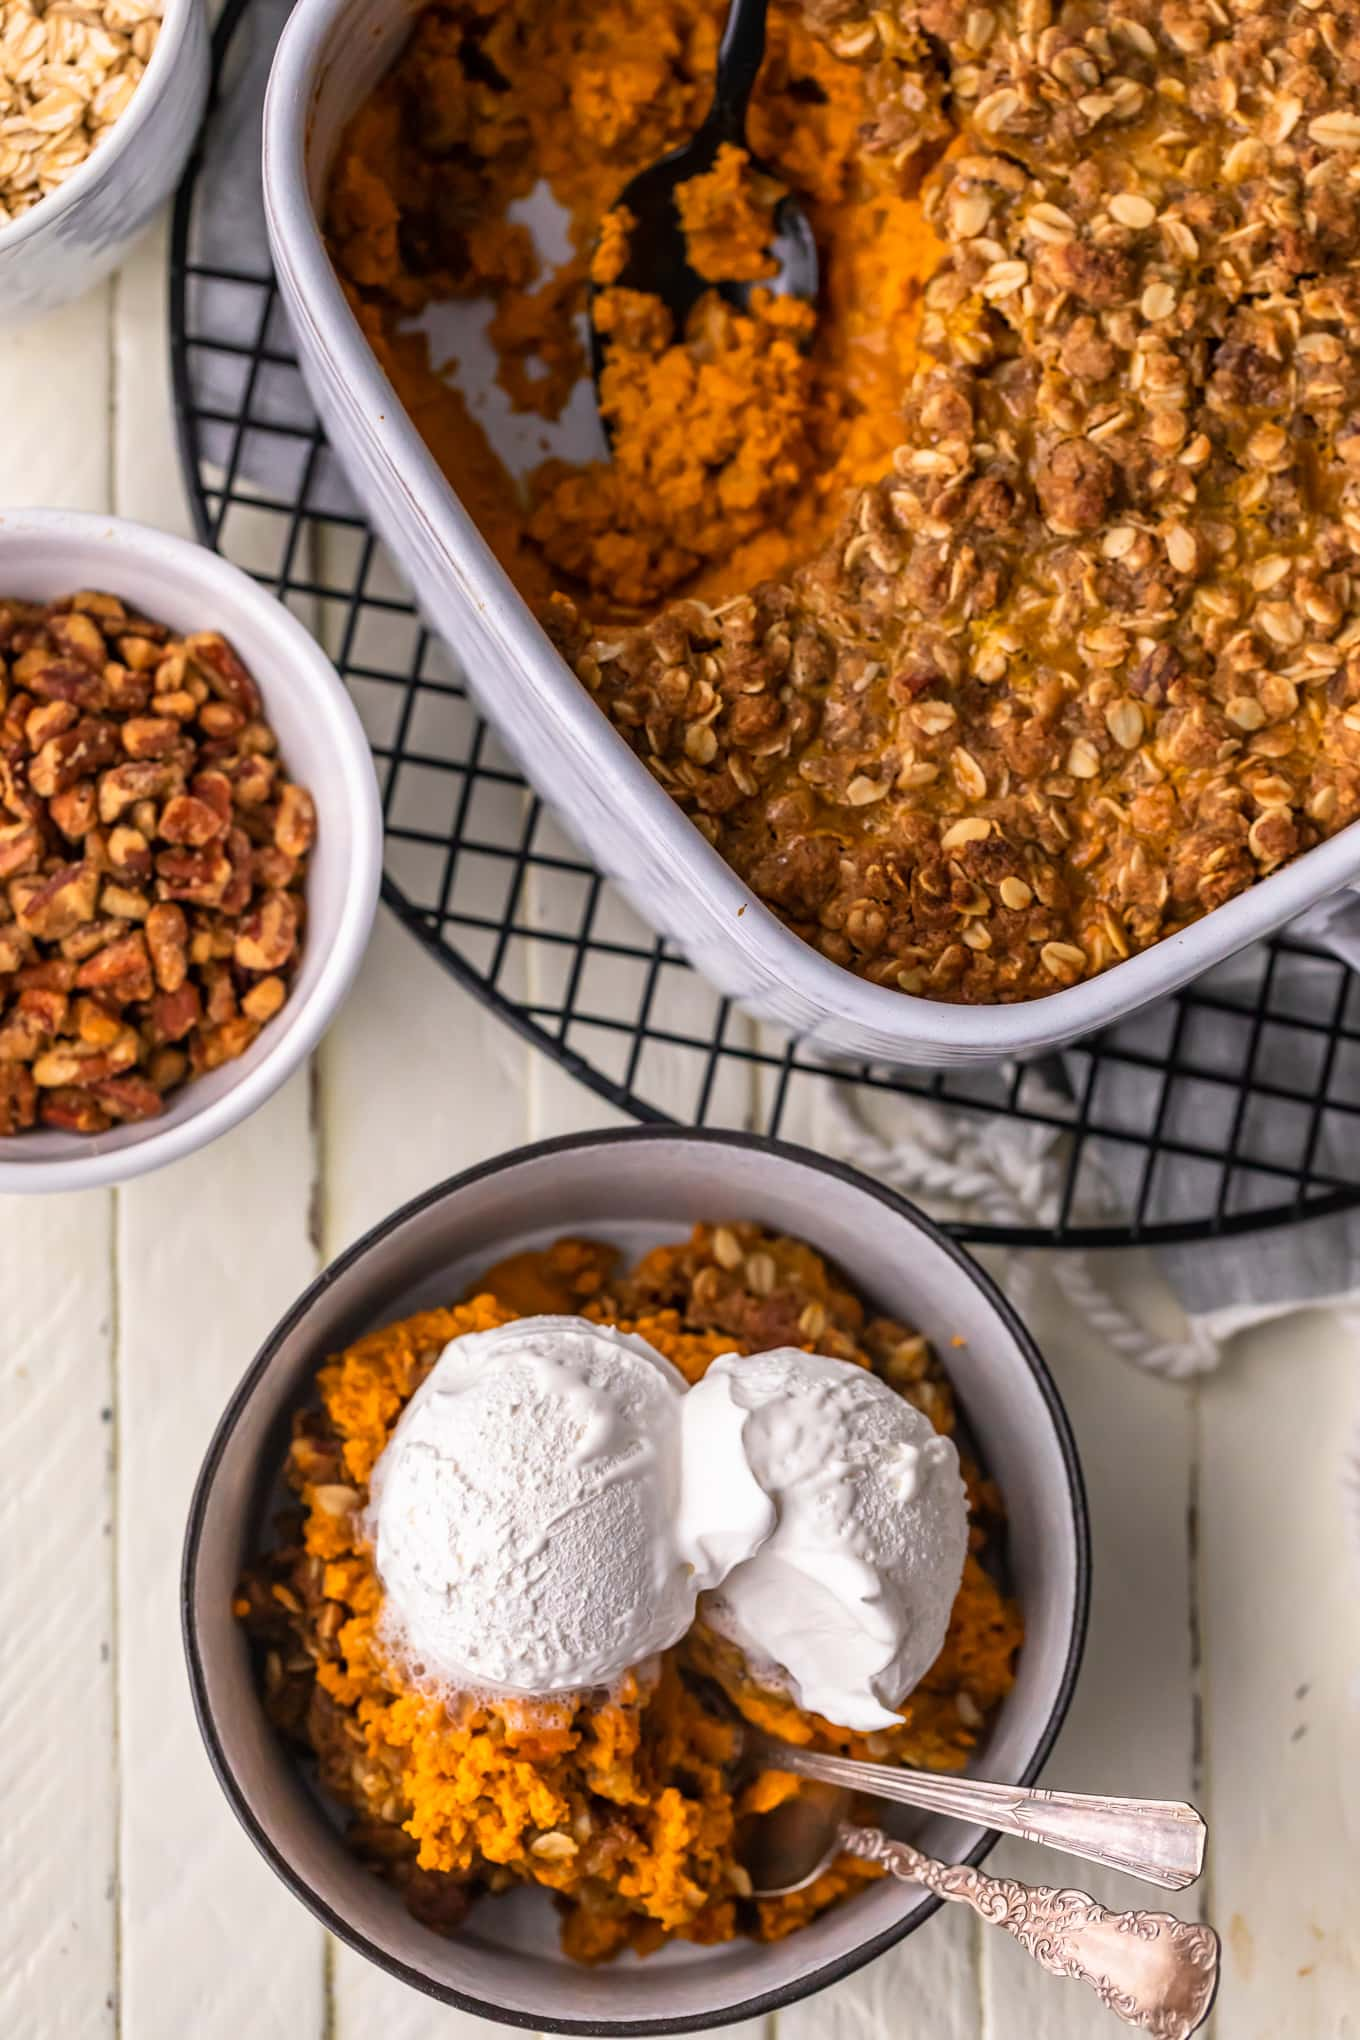 pumpkin crumble in a white baking dish